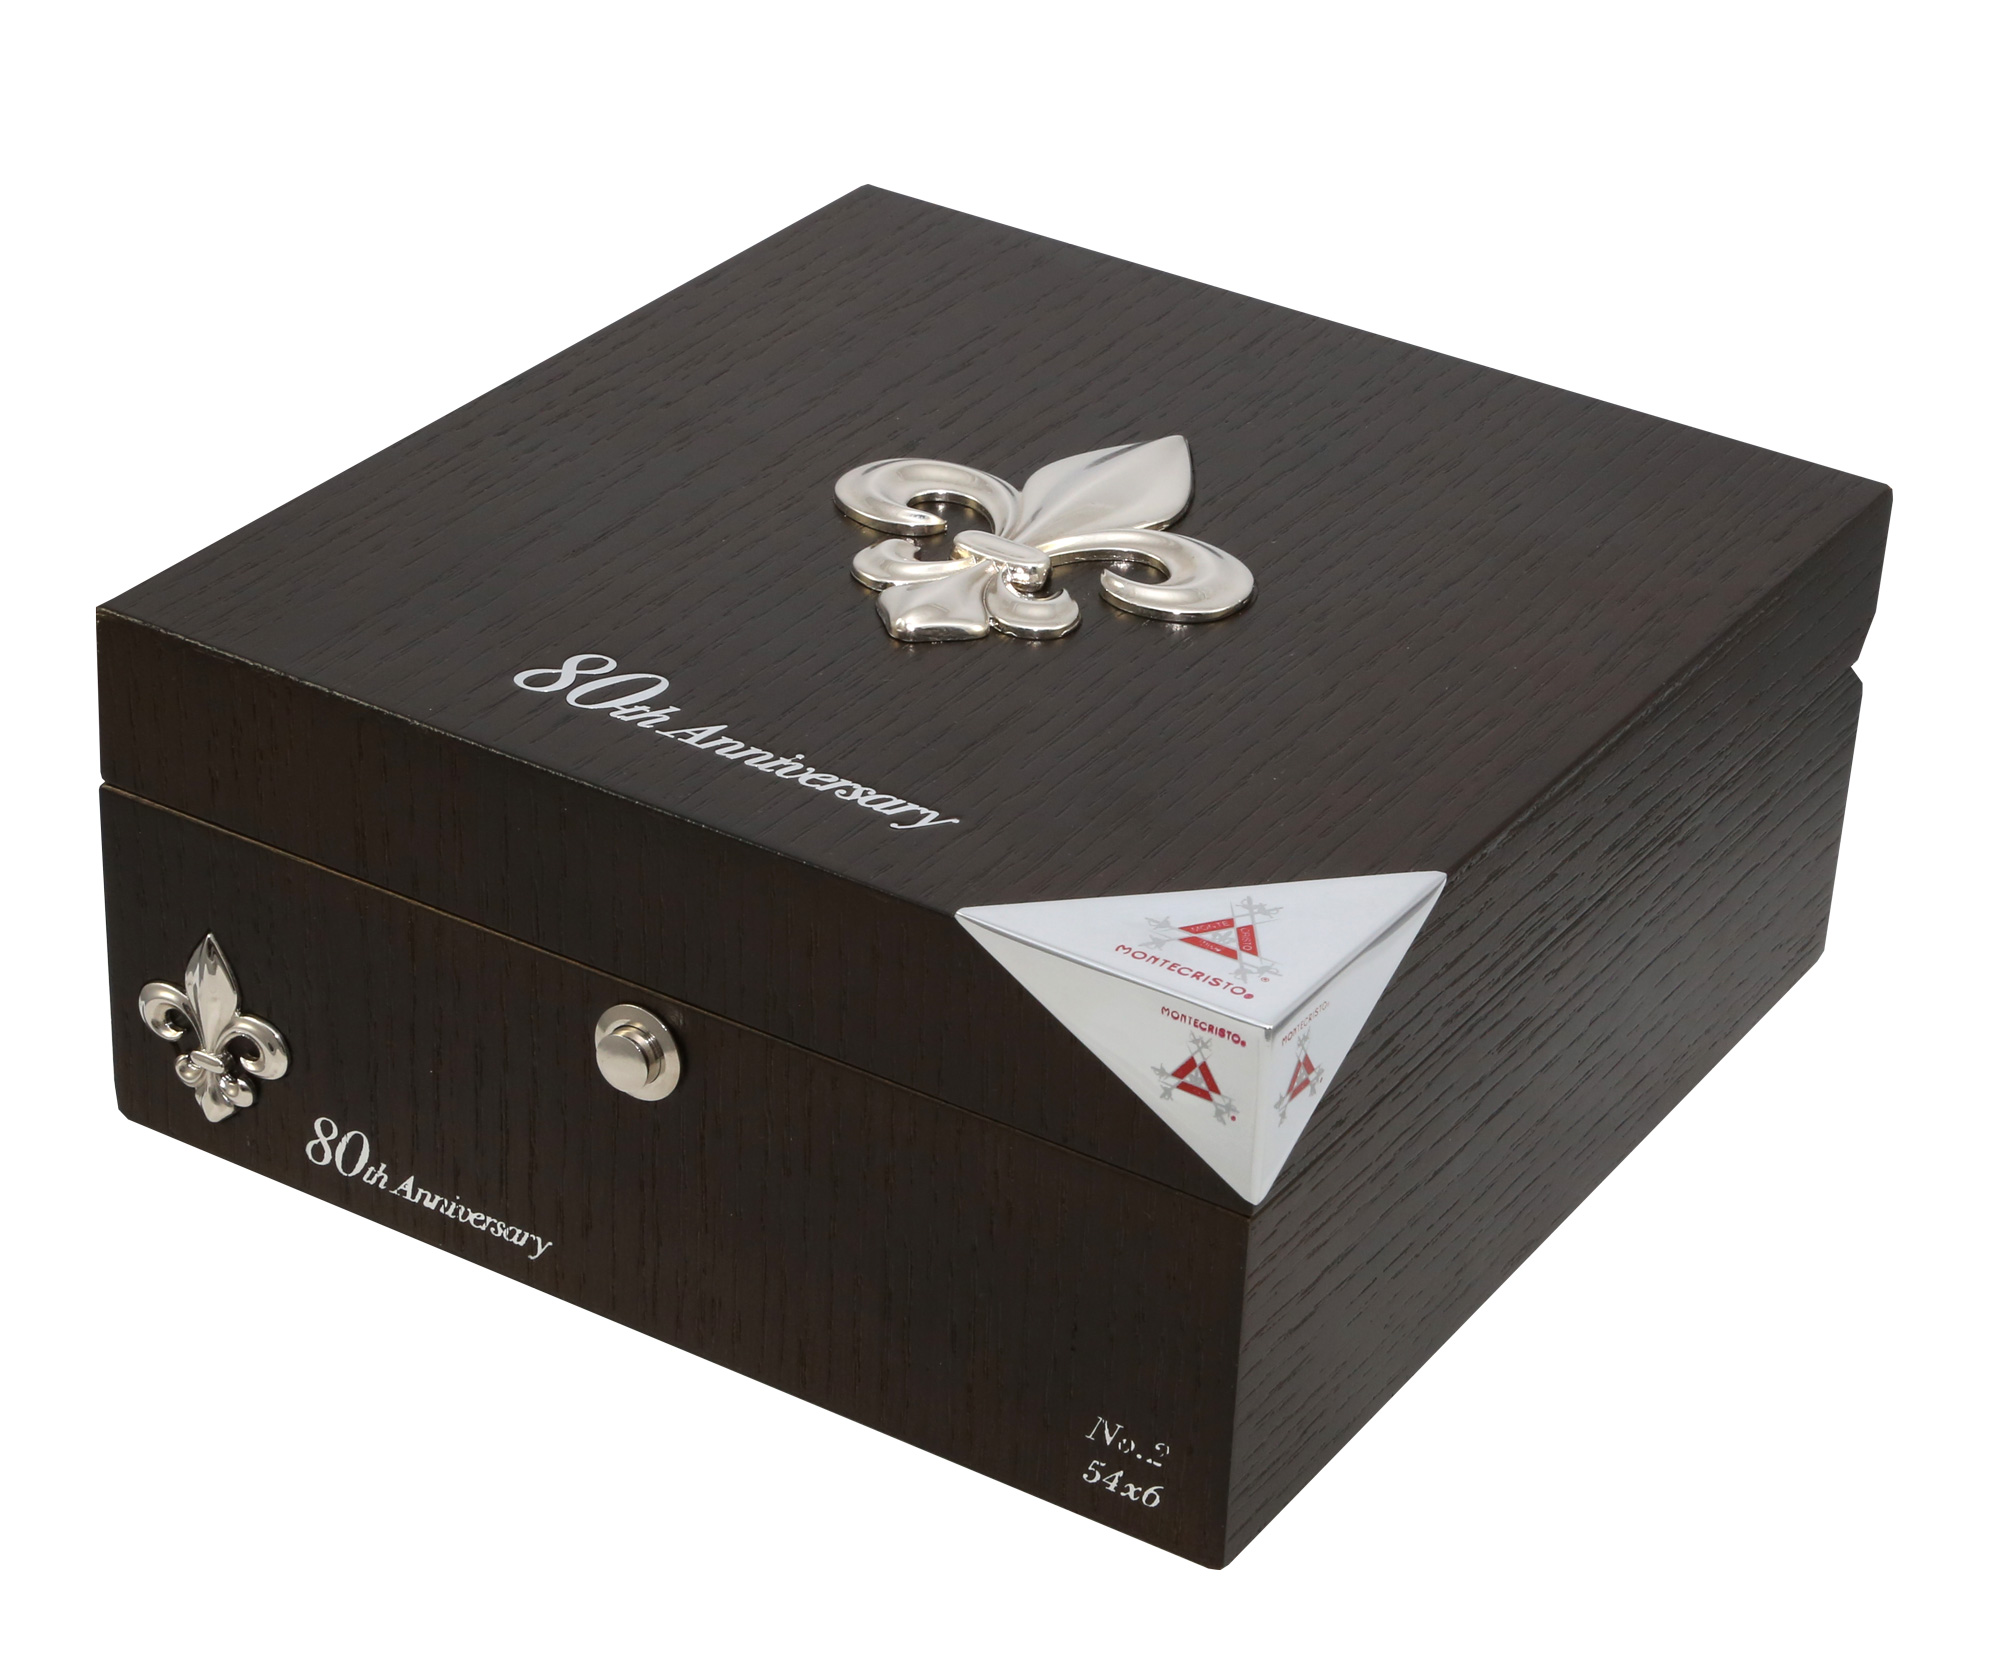 Montecristo_80th_Anniversary_Box_Closed